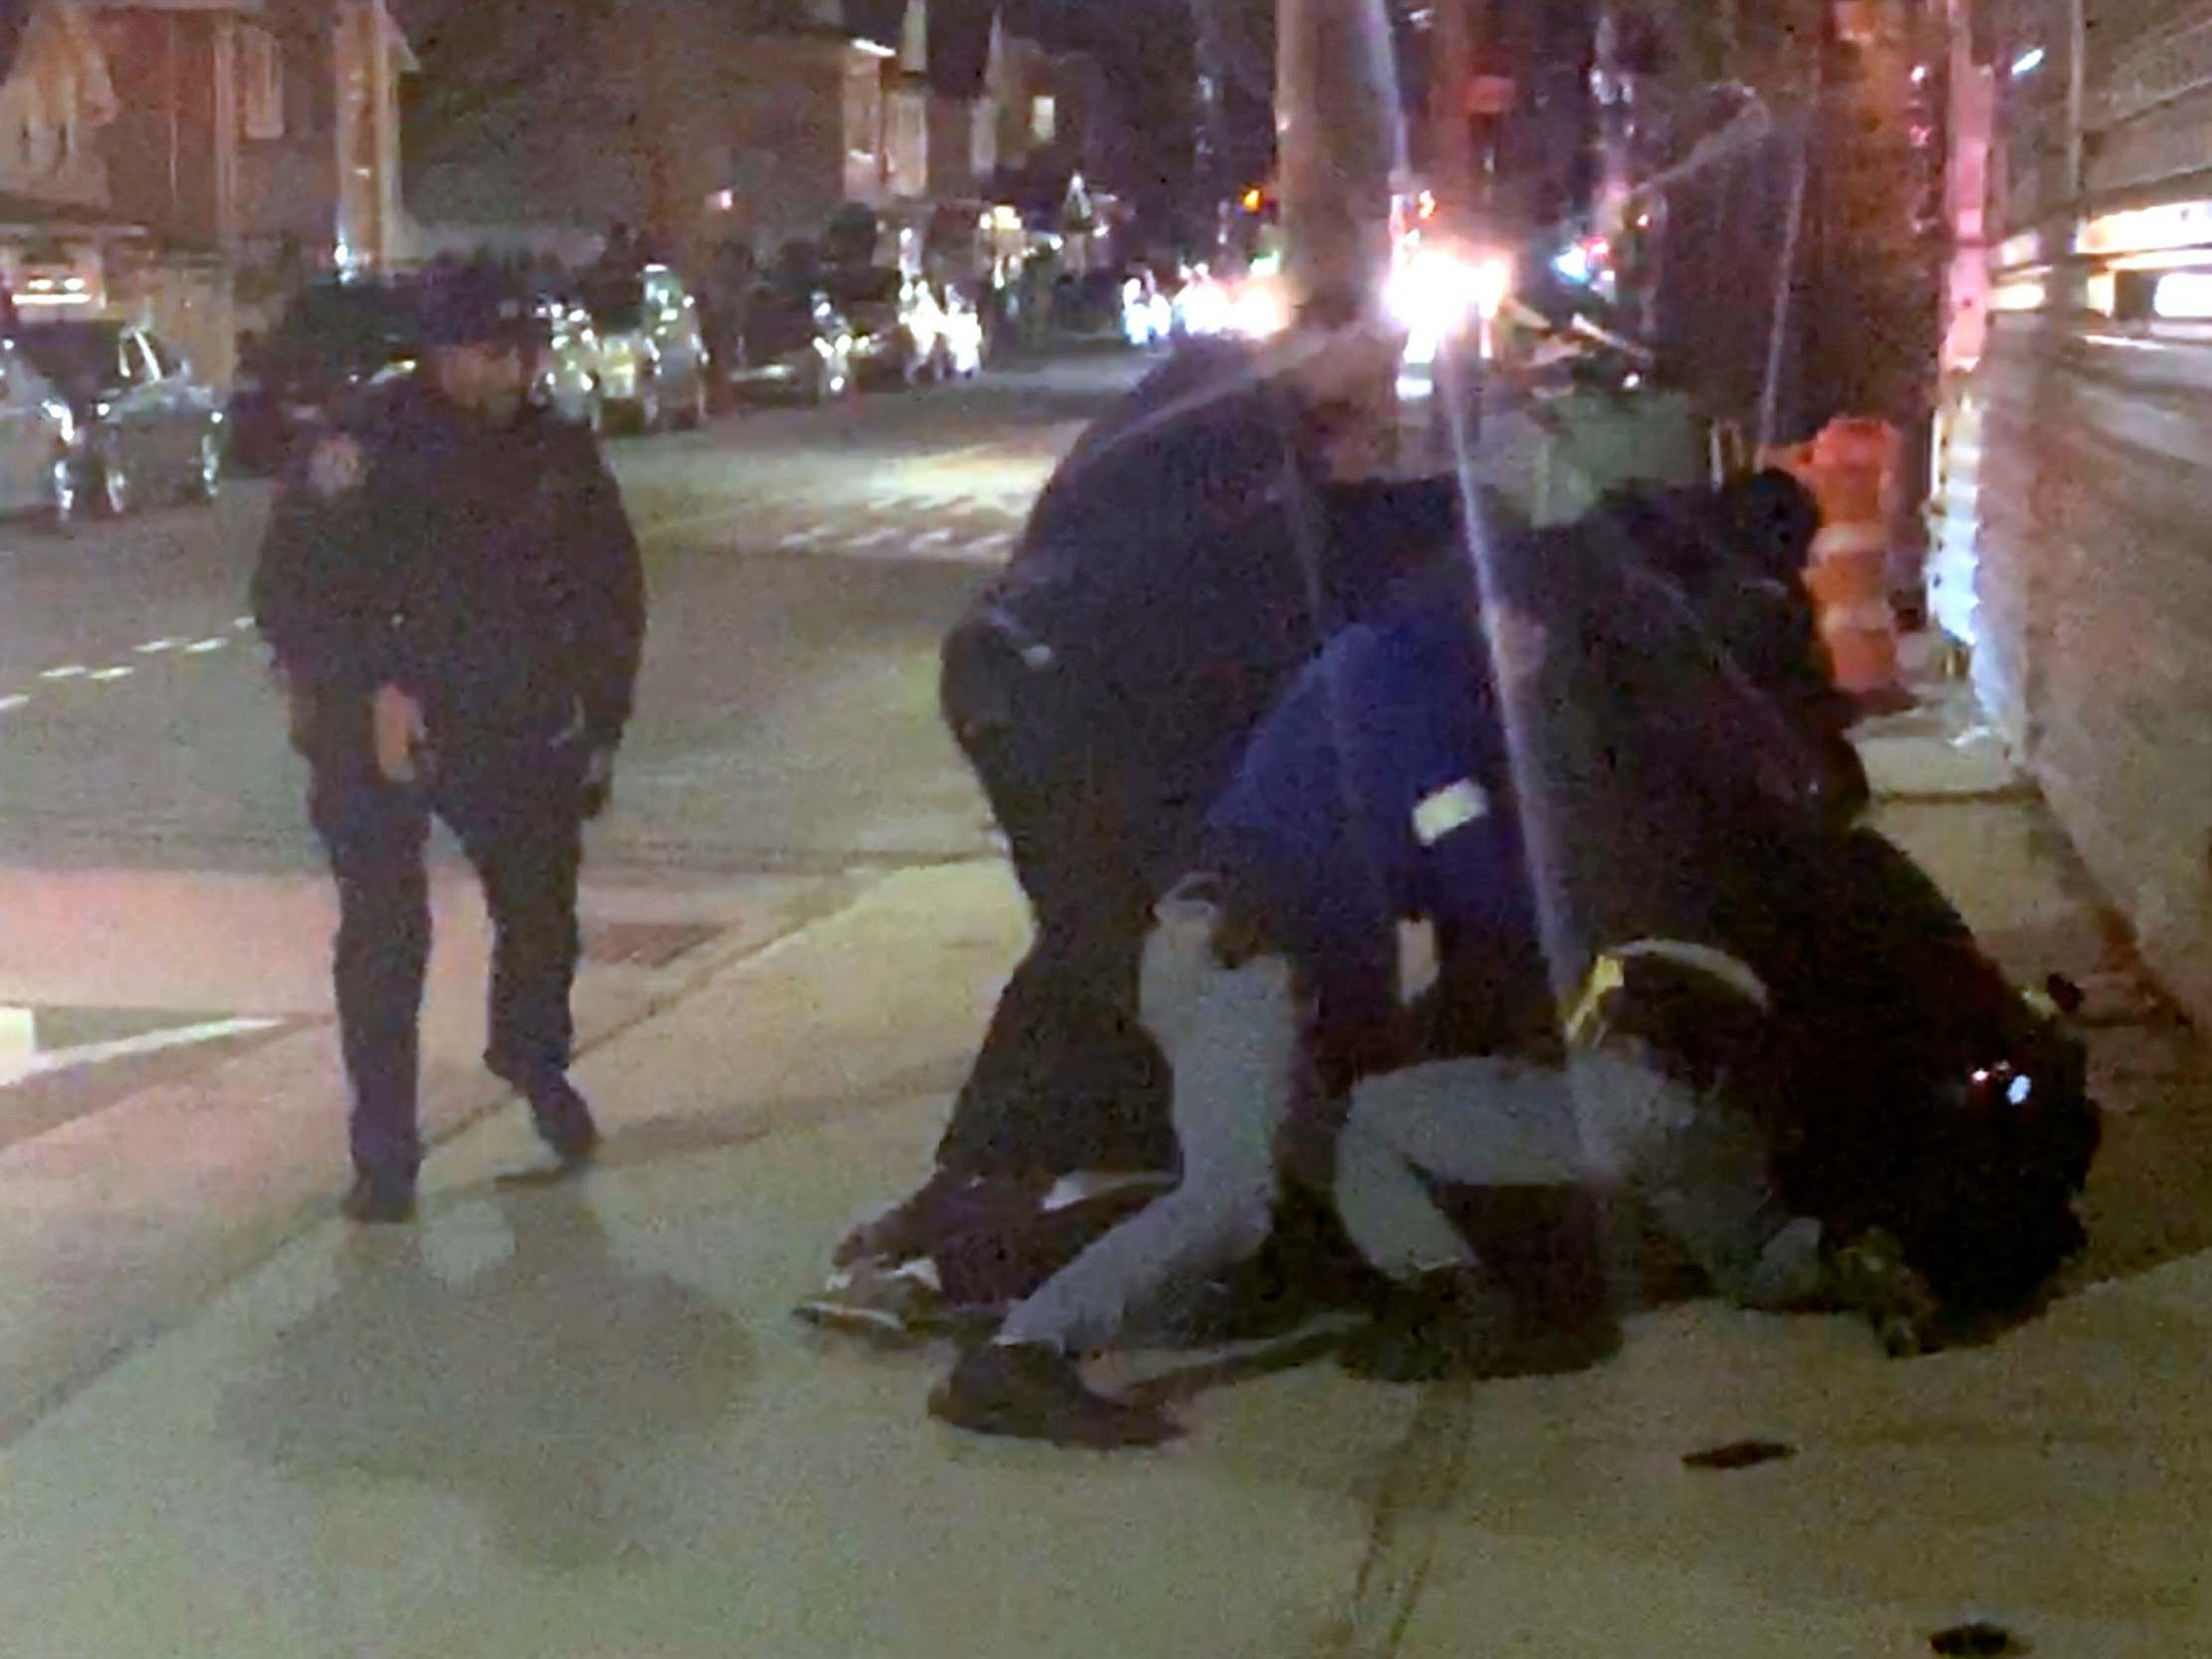 NYPD orders investigation into video showing violent arrest involving multiple officers